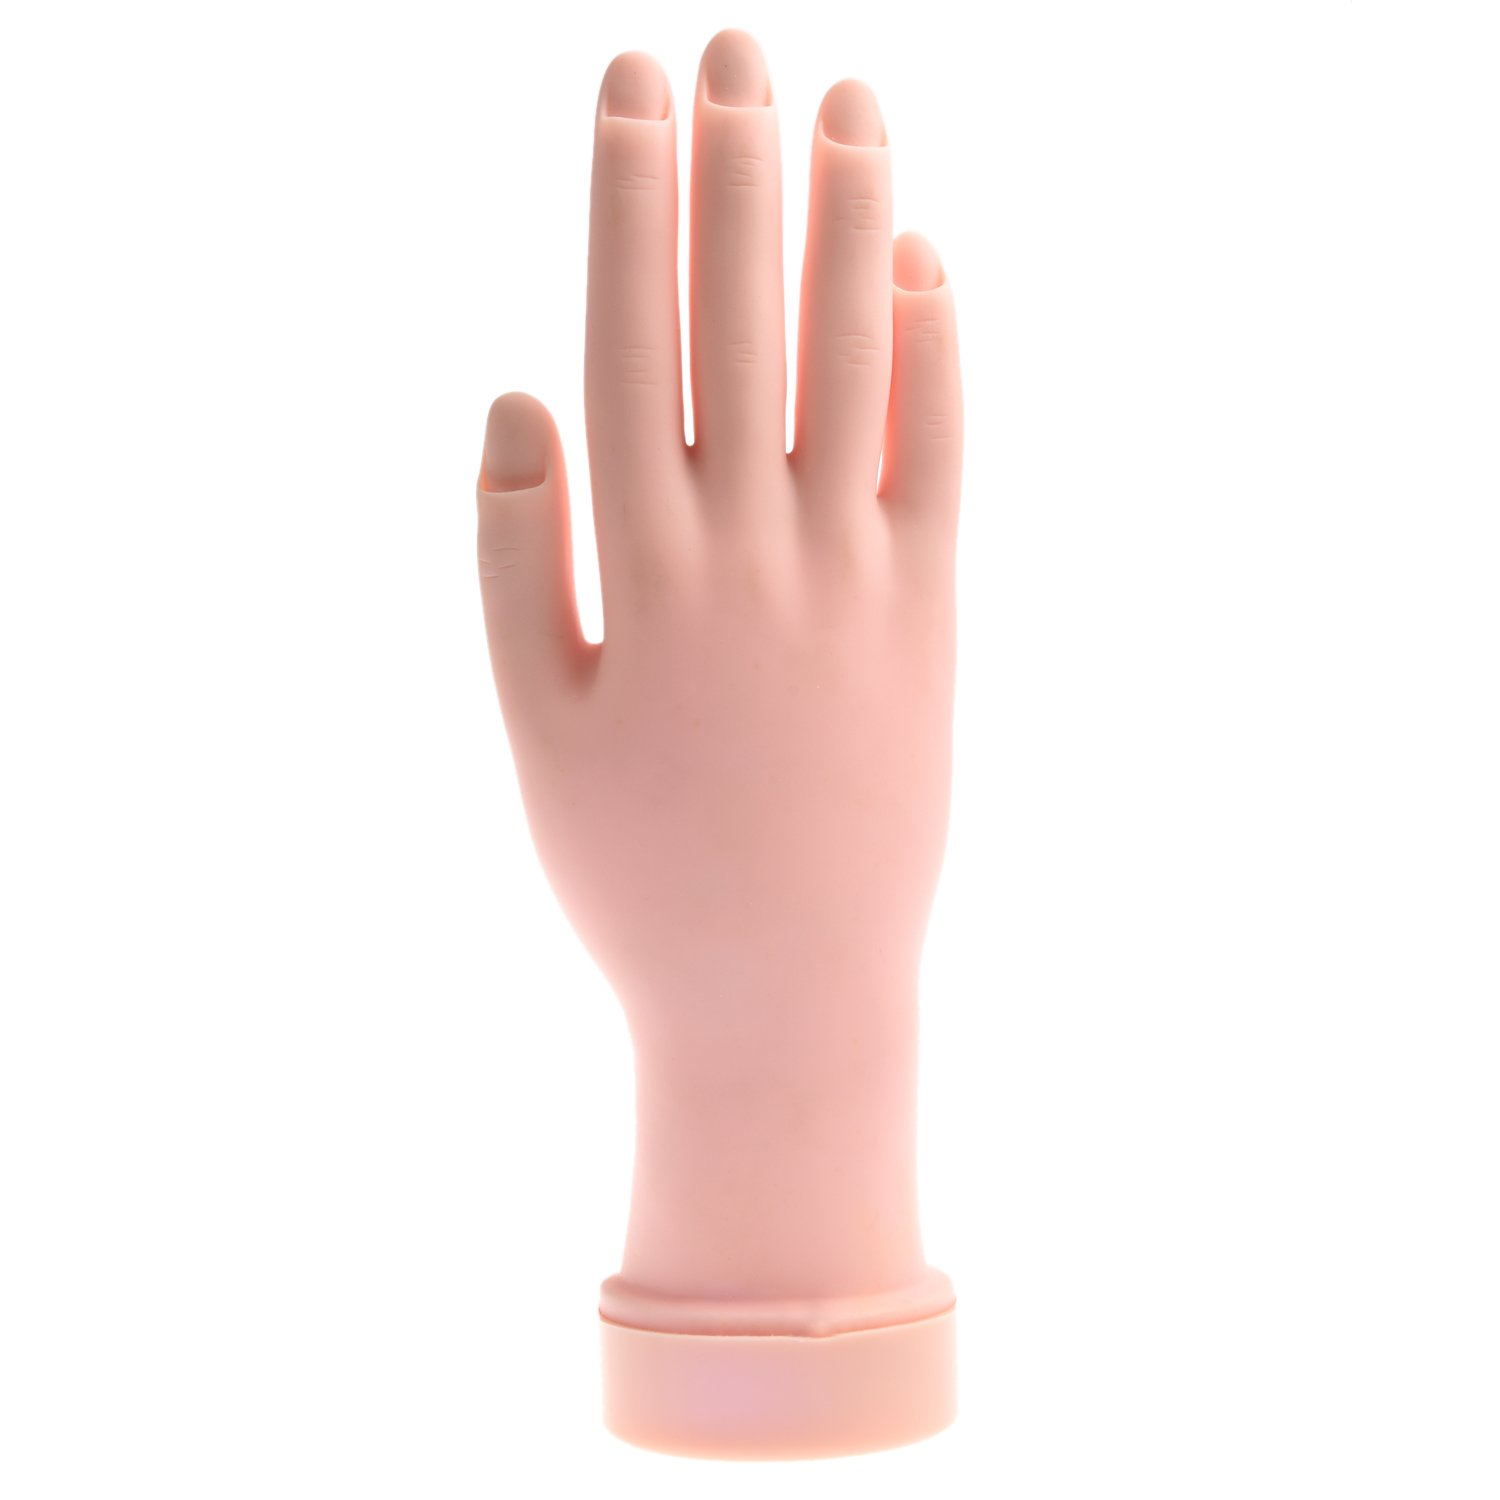 SODIAL(R) Soft Plastic Fake Practice Hand for Nail Art Training Tips